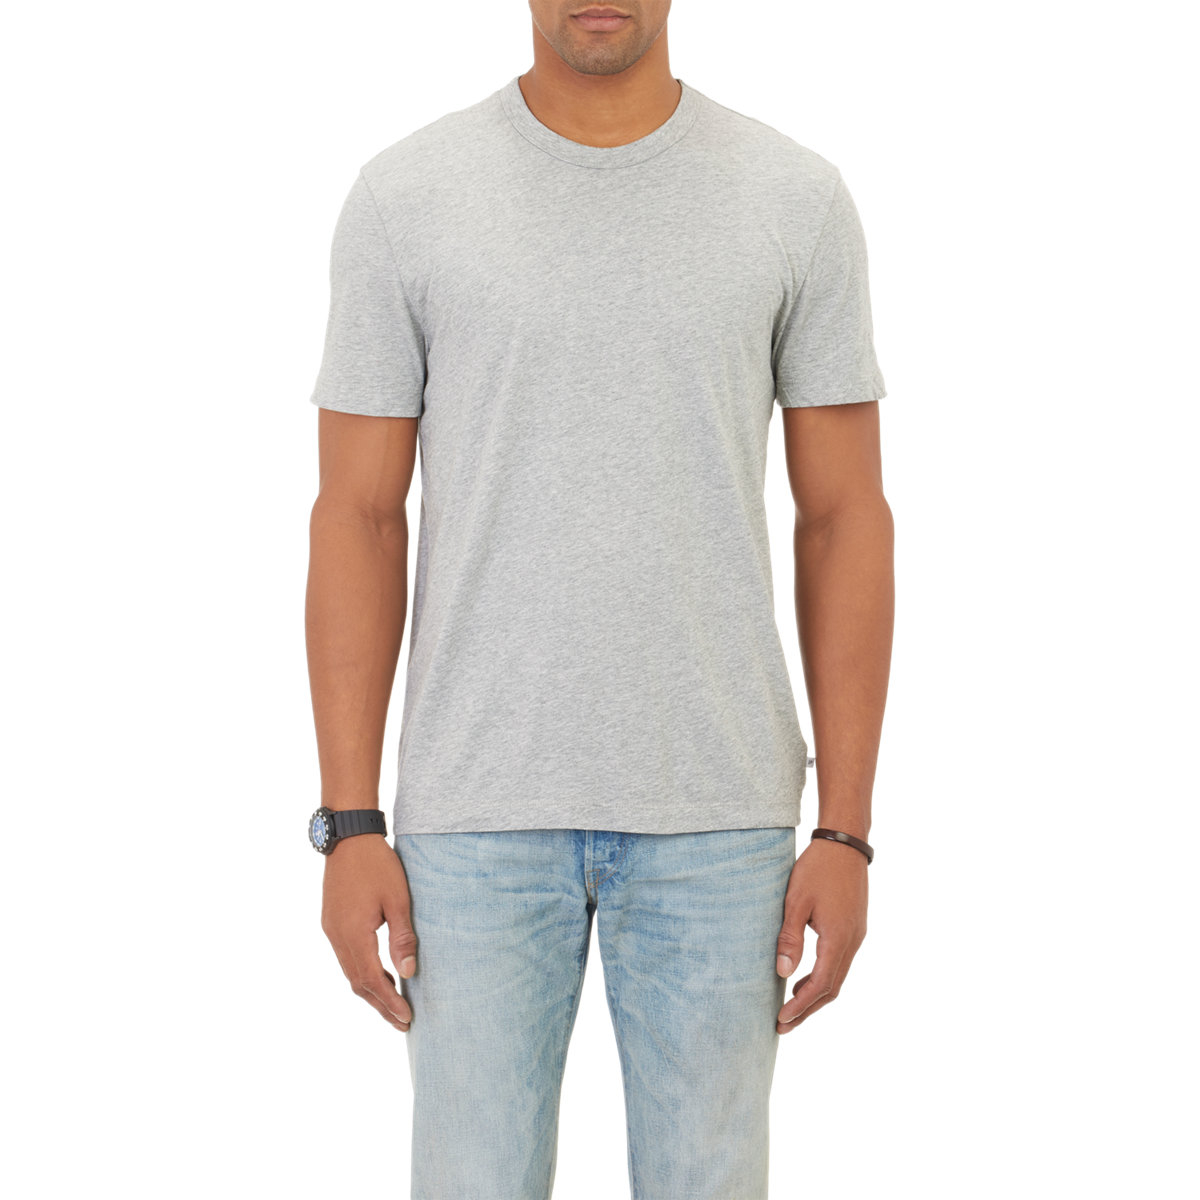 lyst james perse jersey t shirt in gray for men